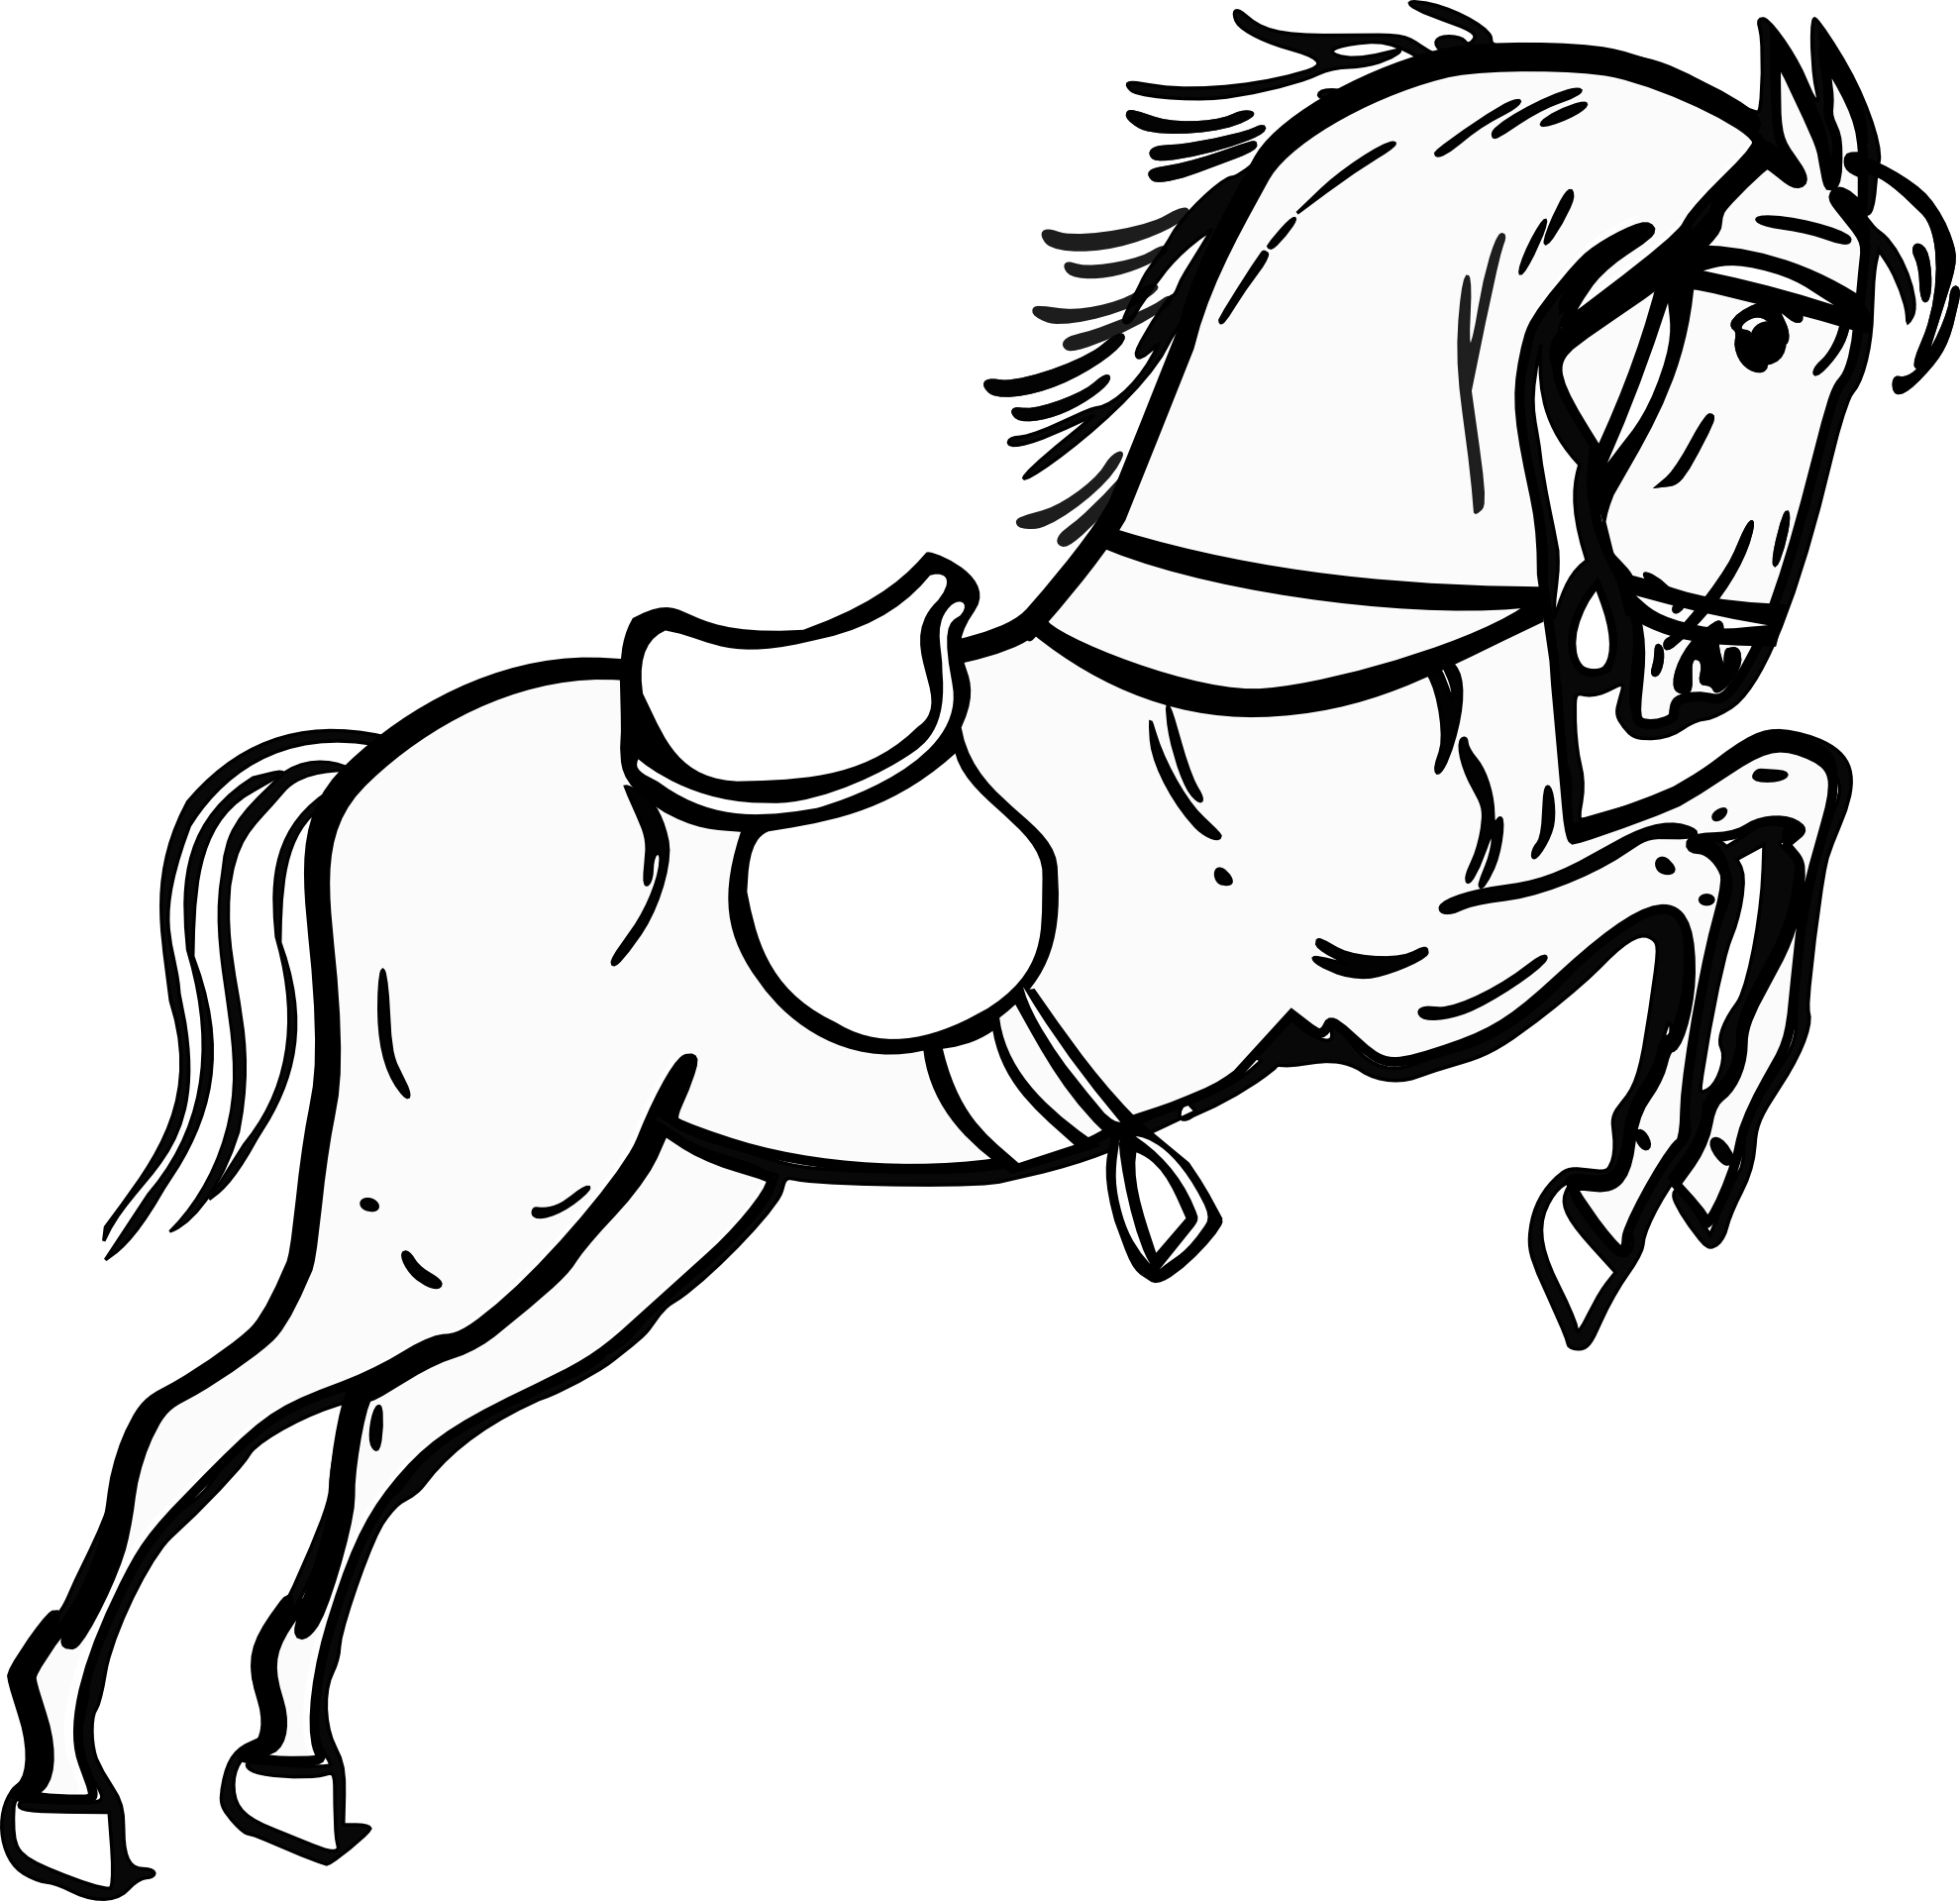 Best Horse Clipart Black and White #28964.